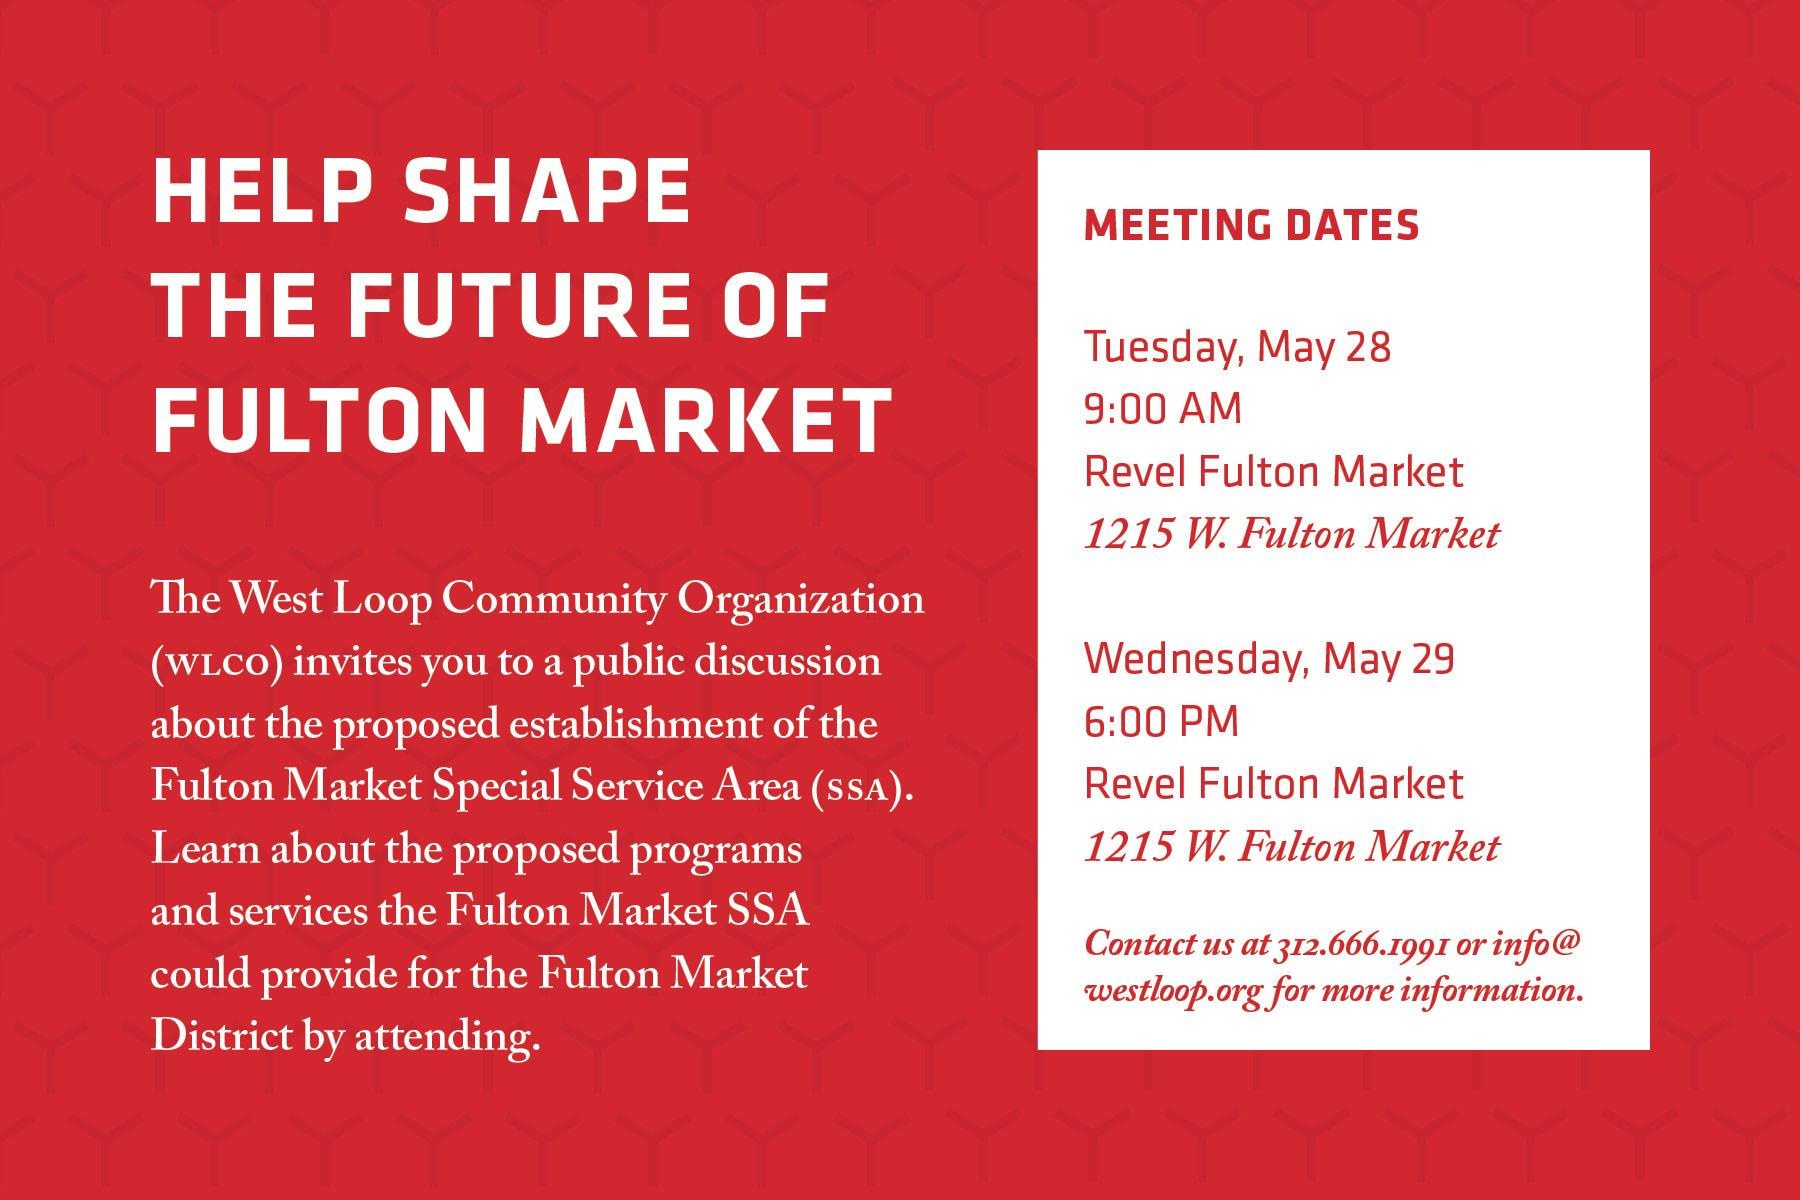 Help Shape the Future of Fulton Market